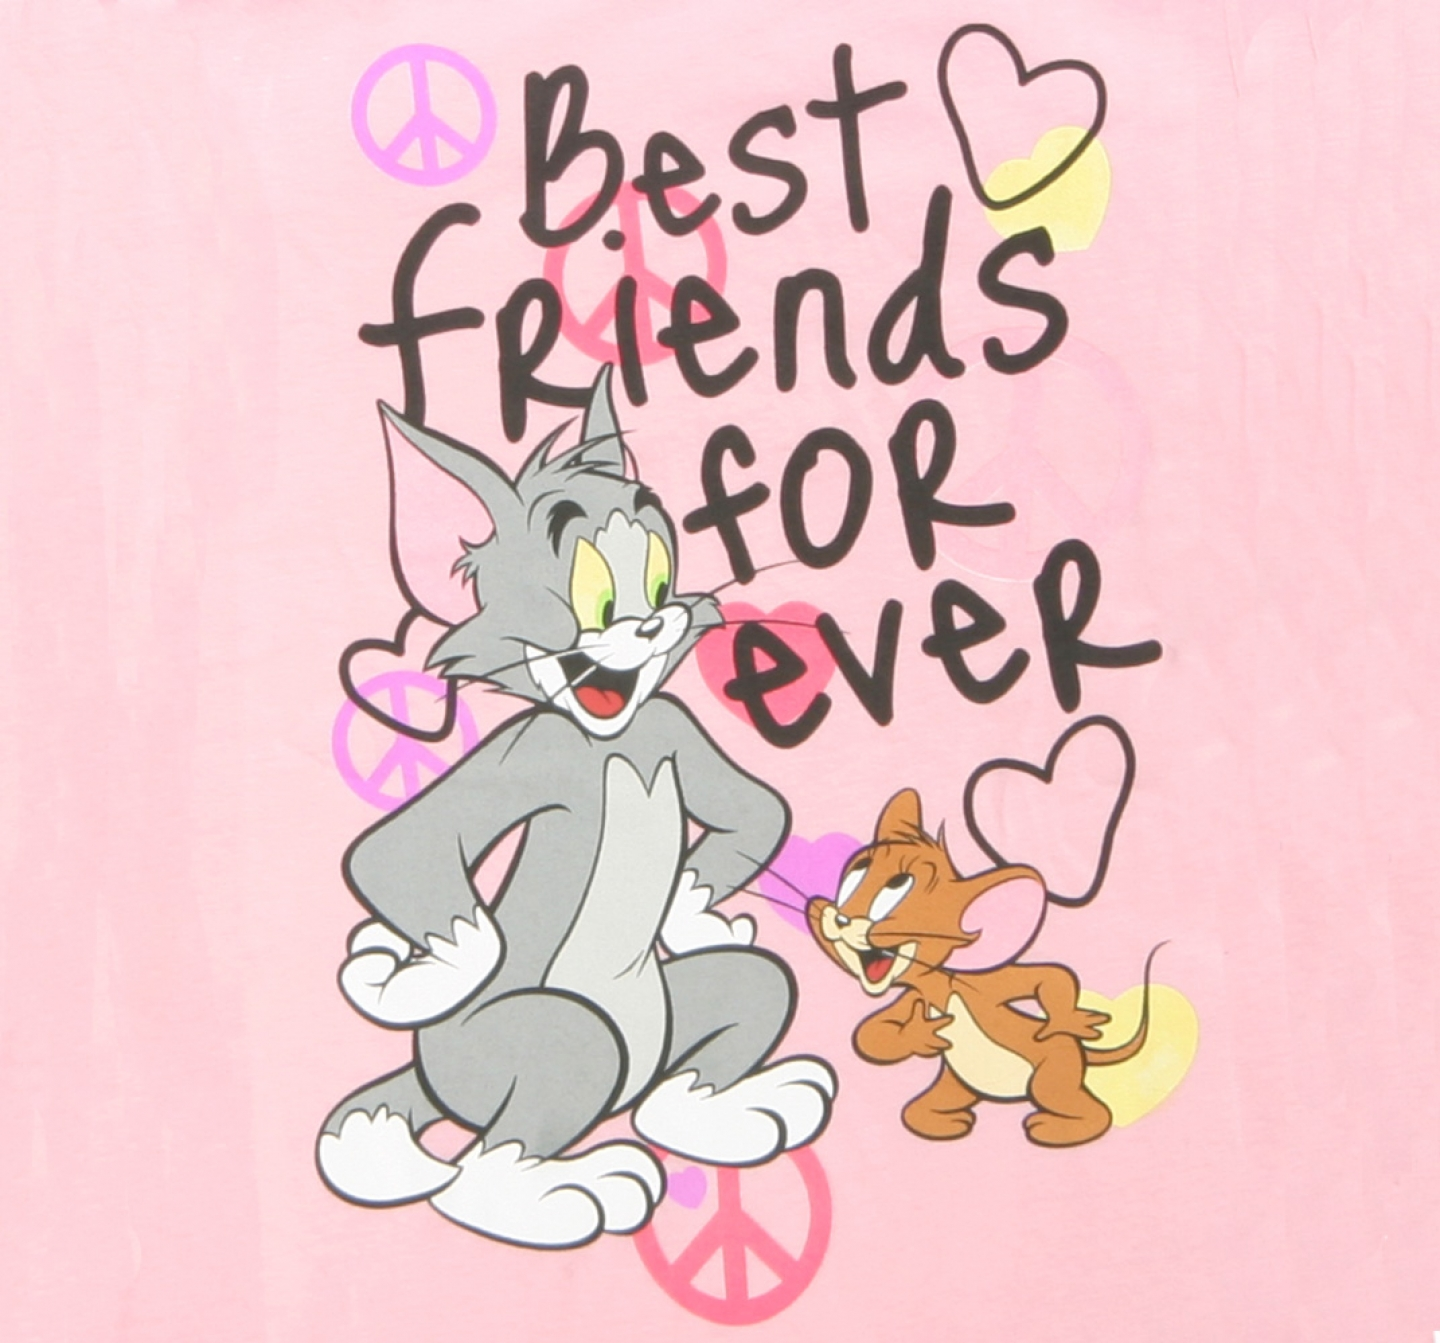 Best friends forever pictures with Funny Best friends status 1440x1343